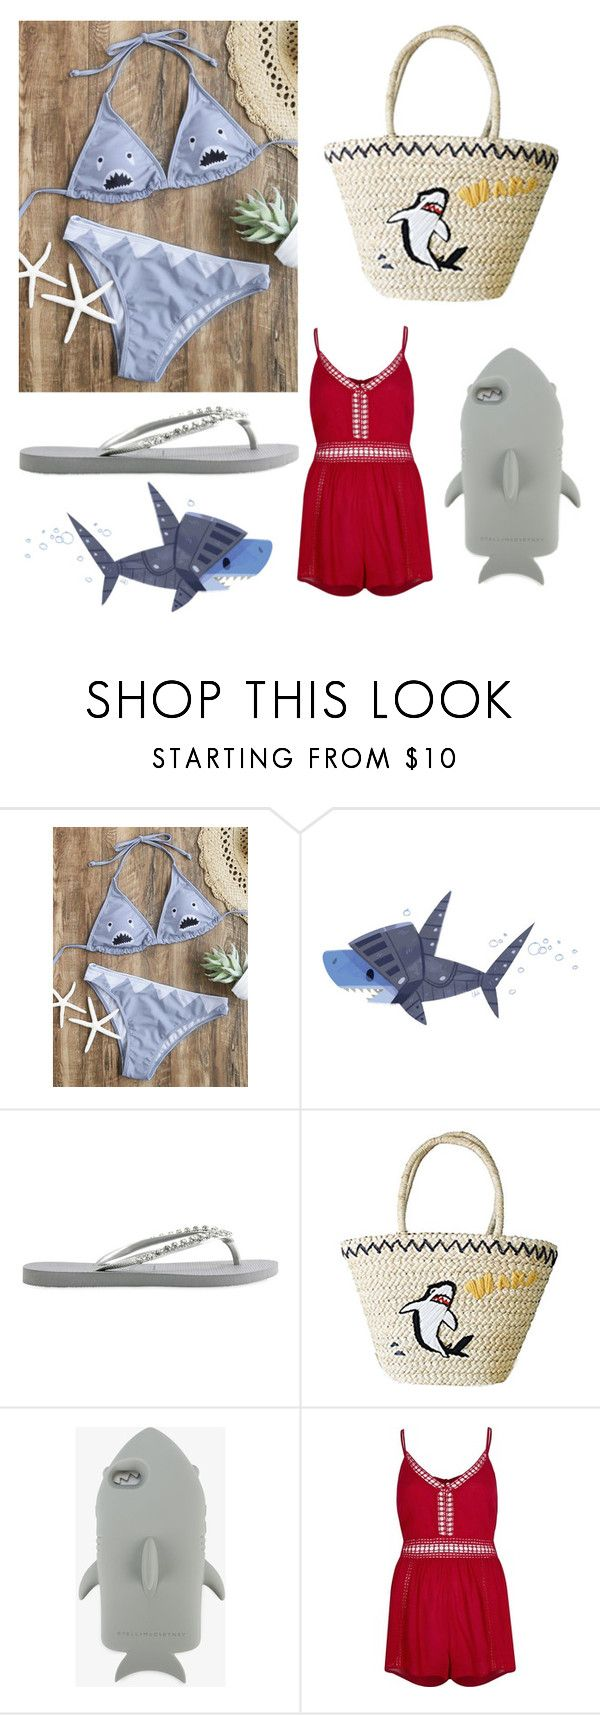 """""""shark beach look 🐬"""" by miagrange1 ❤ liked on Polyvore featuring WithChic, Havaianas, STELLA McCARTNEY and River Island"""